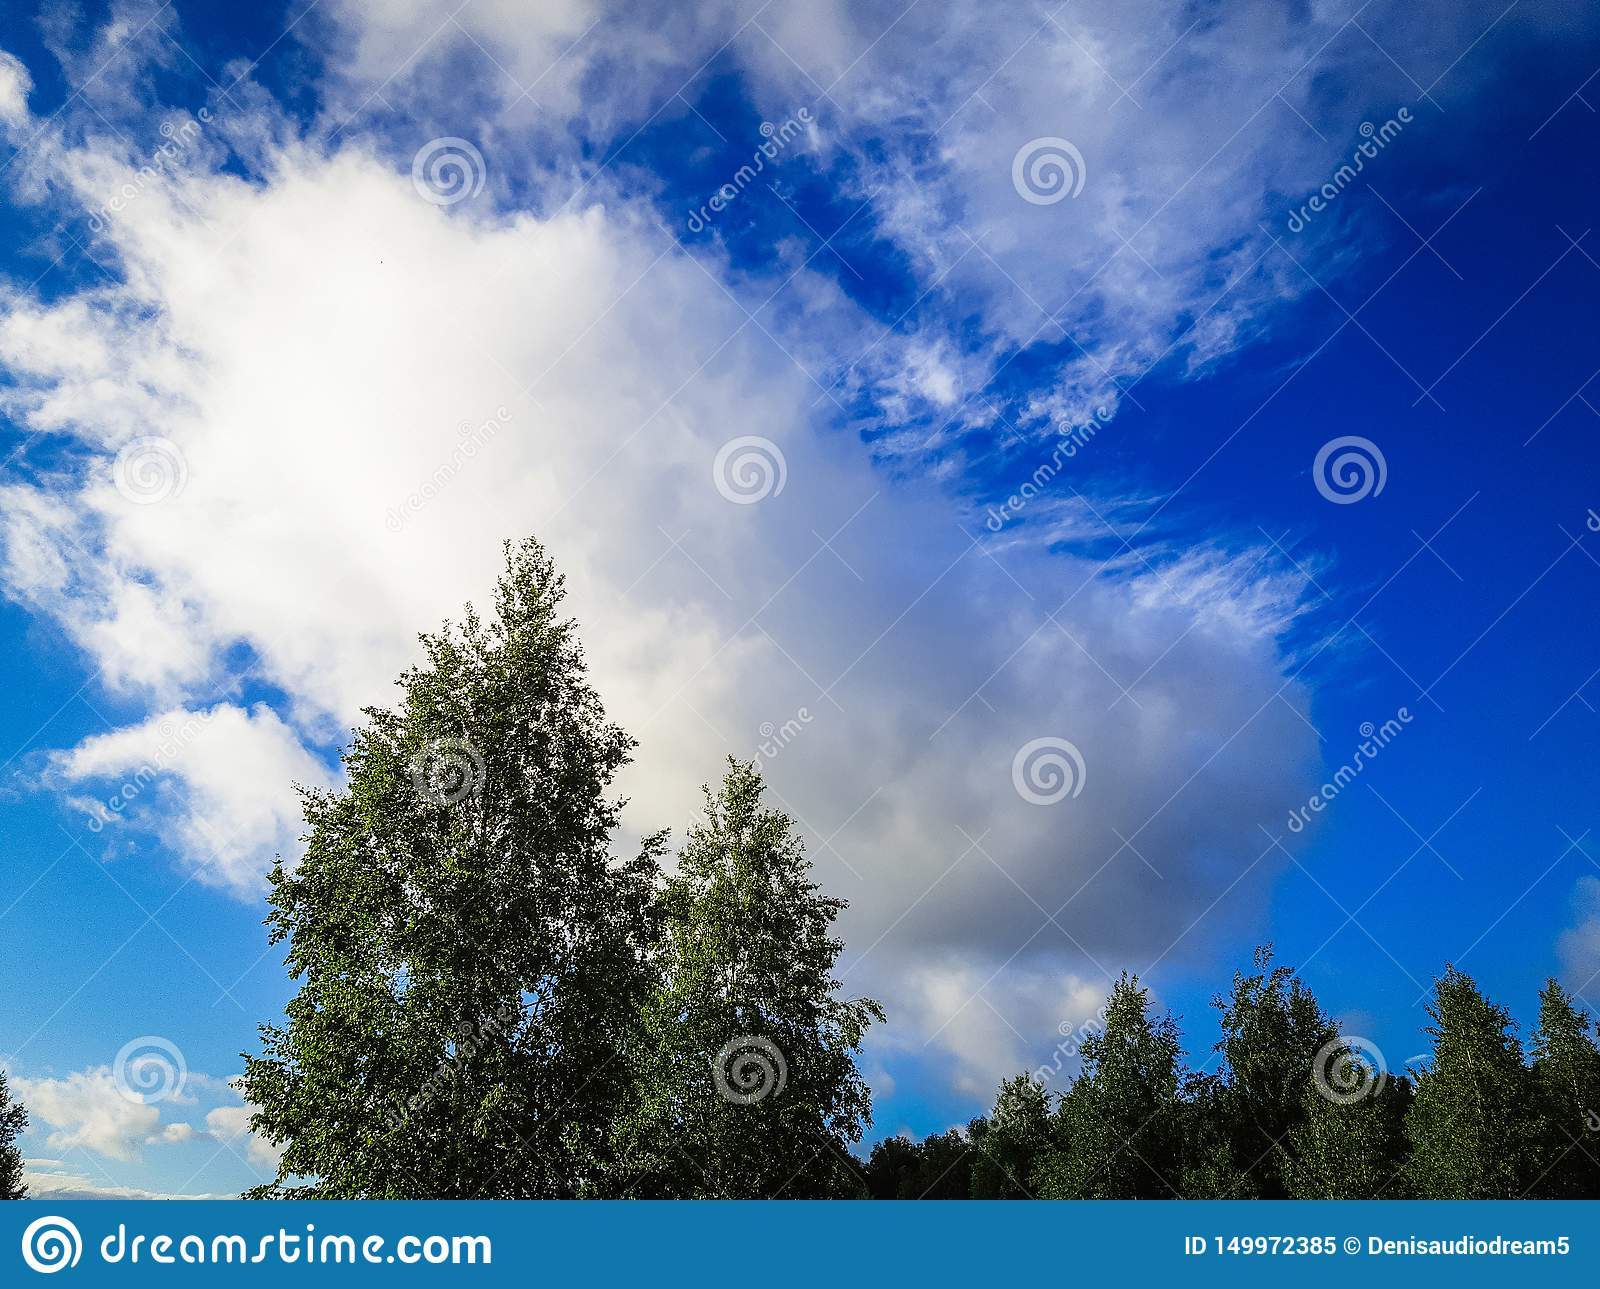 Very beautiful blue sky with clouds